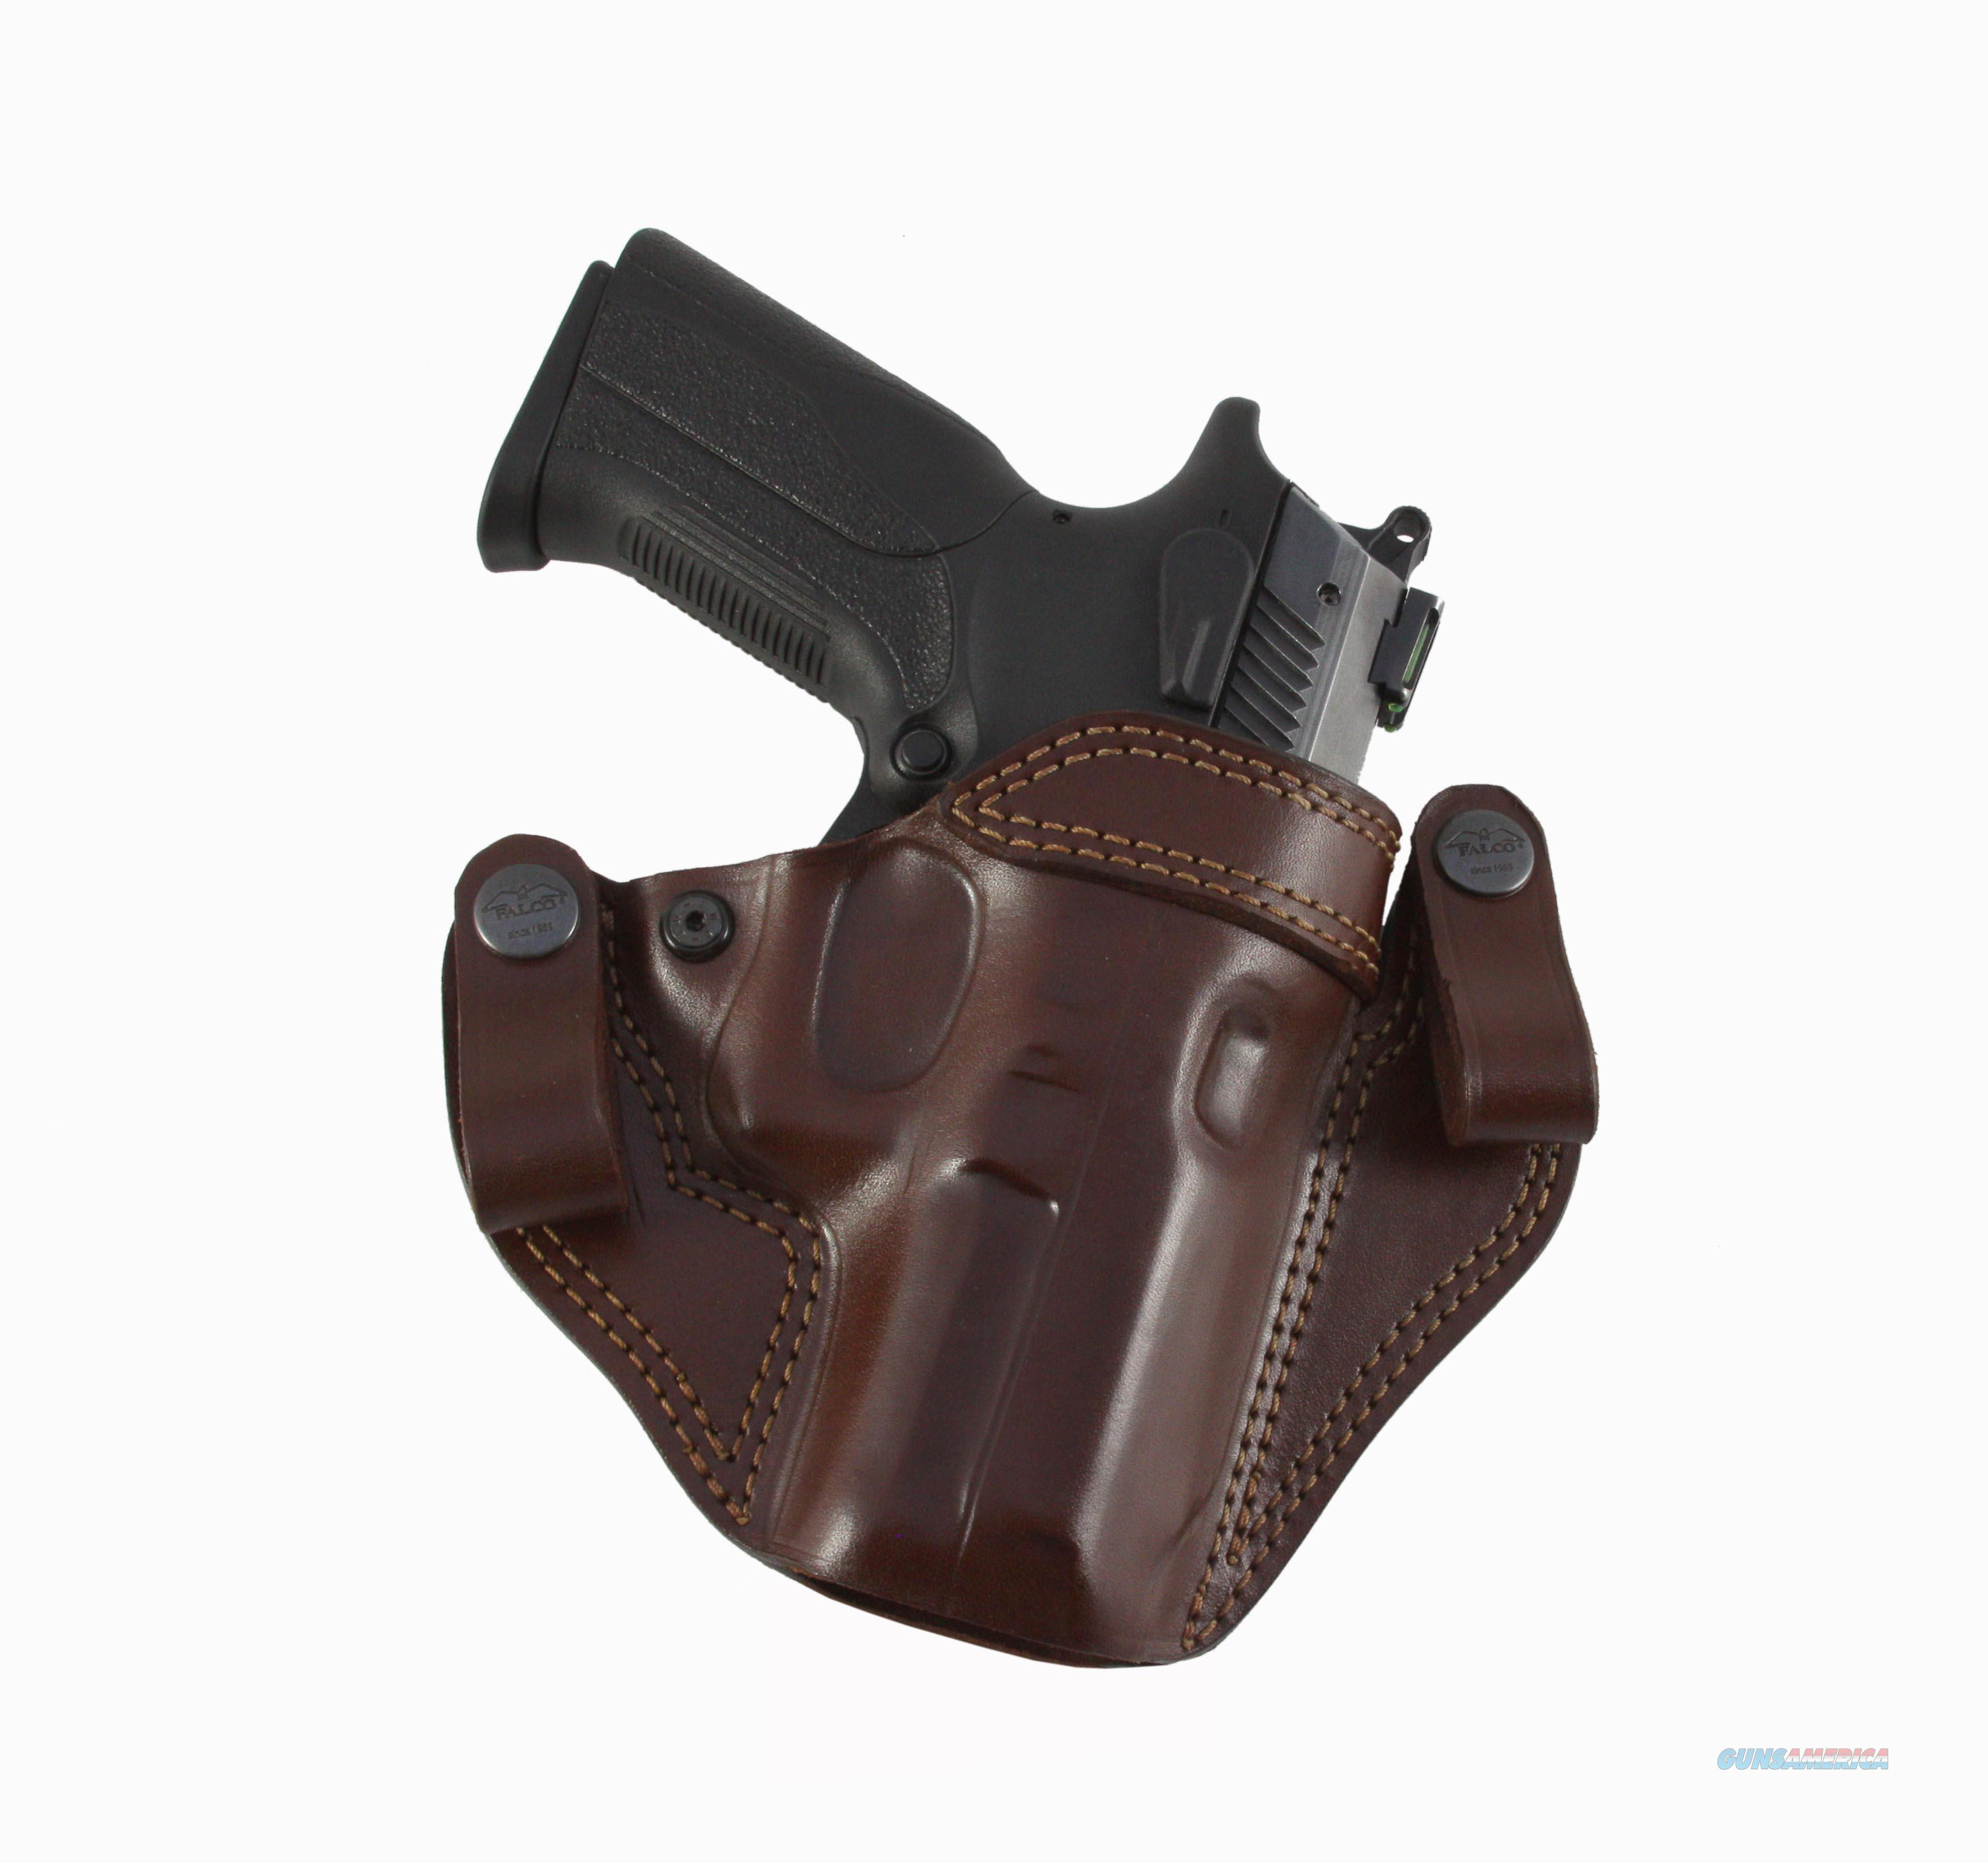 IWB Holster for Concealed Gun Carry Heckler & Koch P30L  Non-Guns > Holsters and Gunleather > Concealed Carry